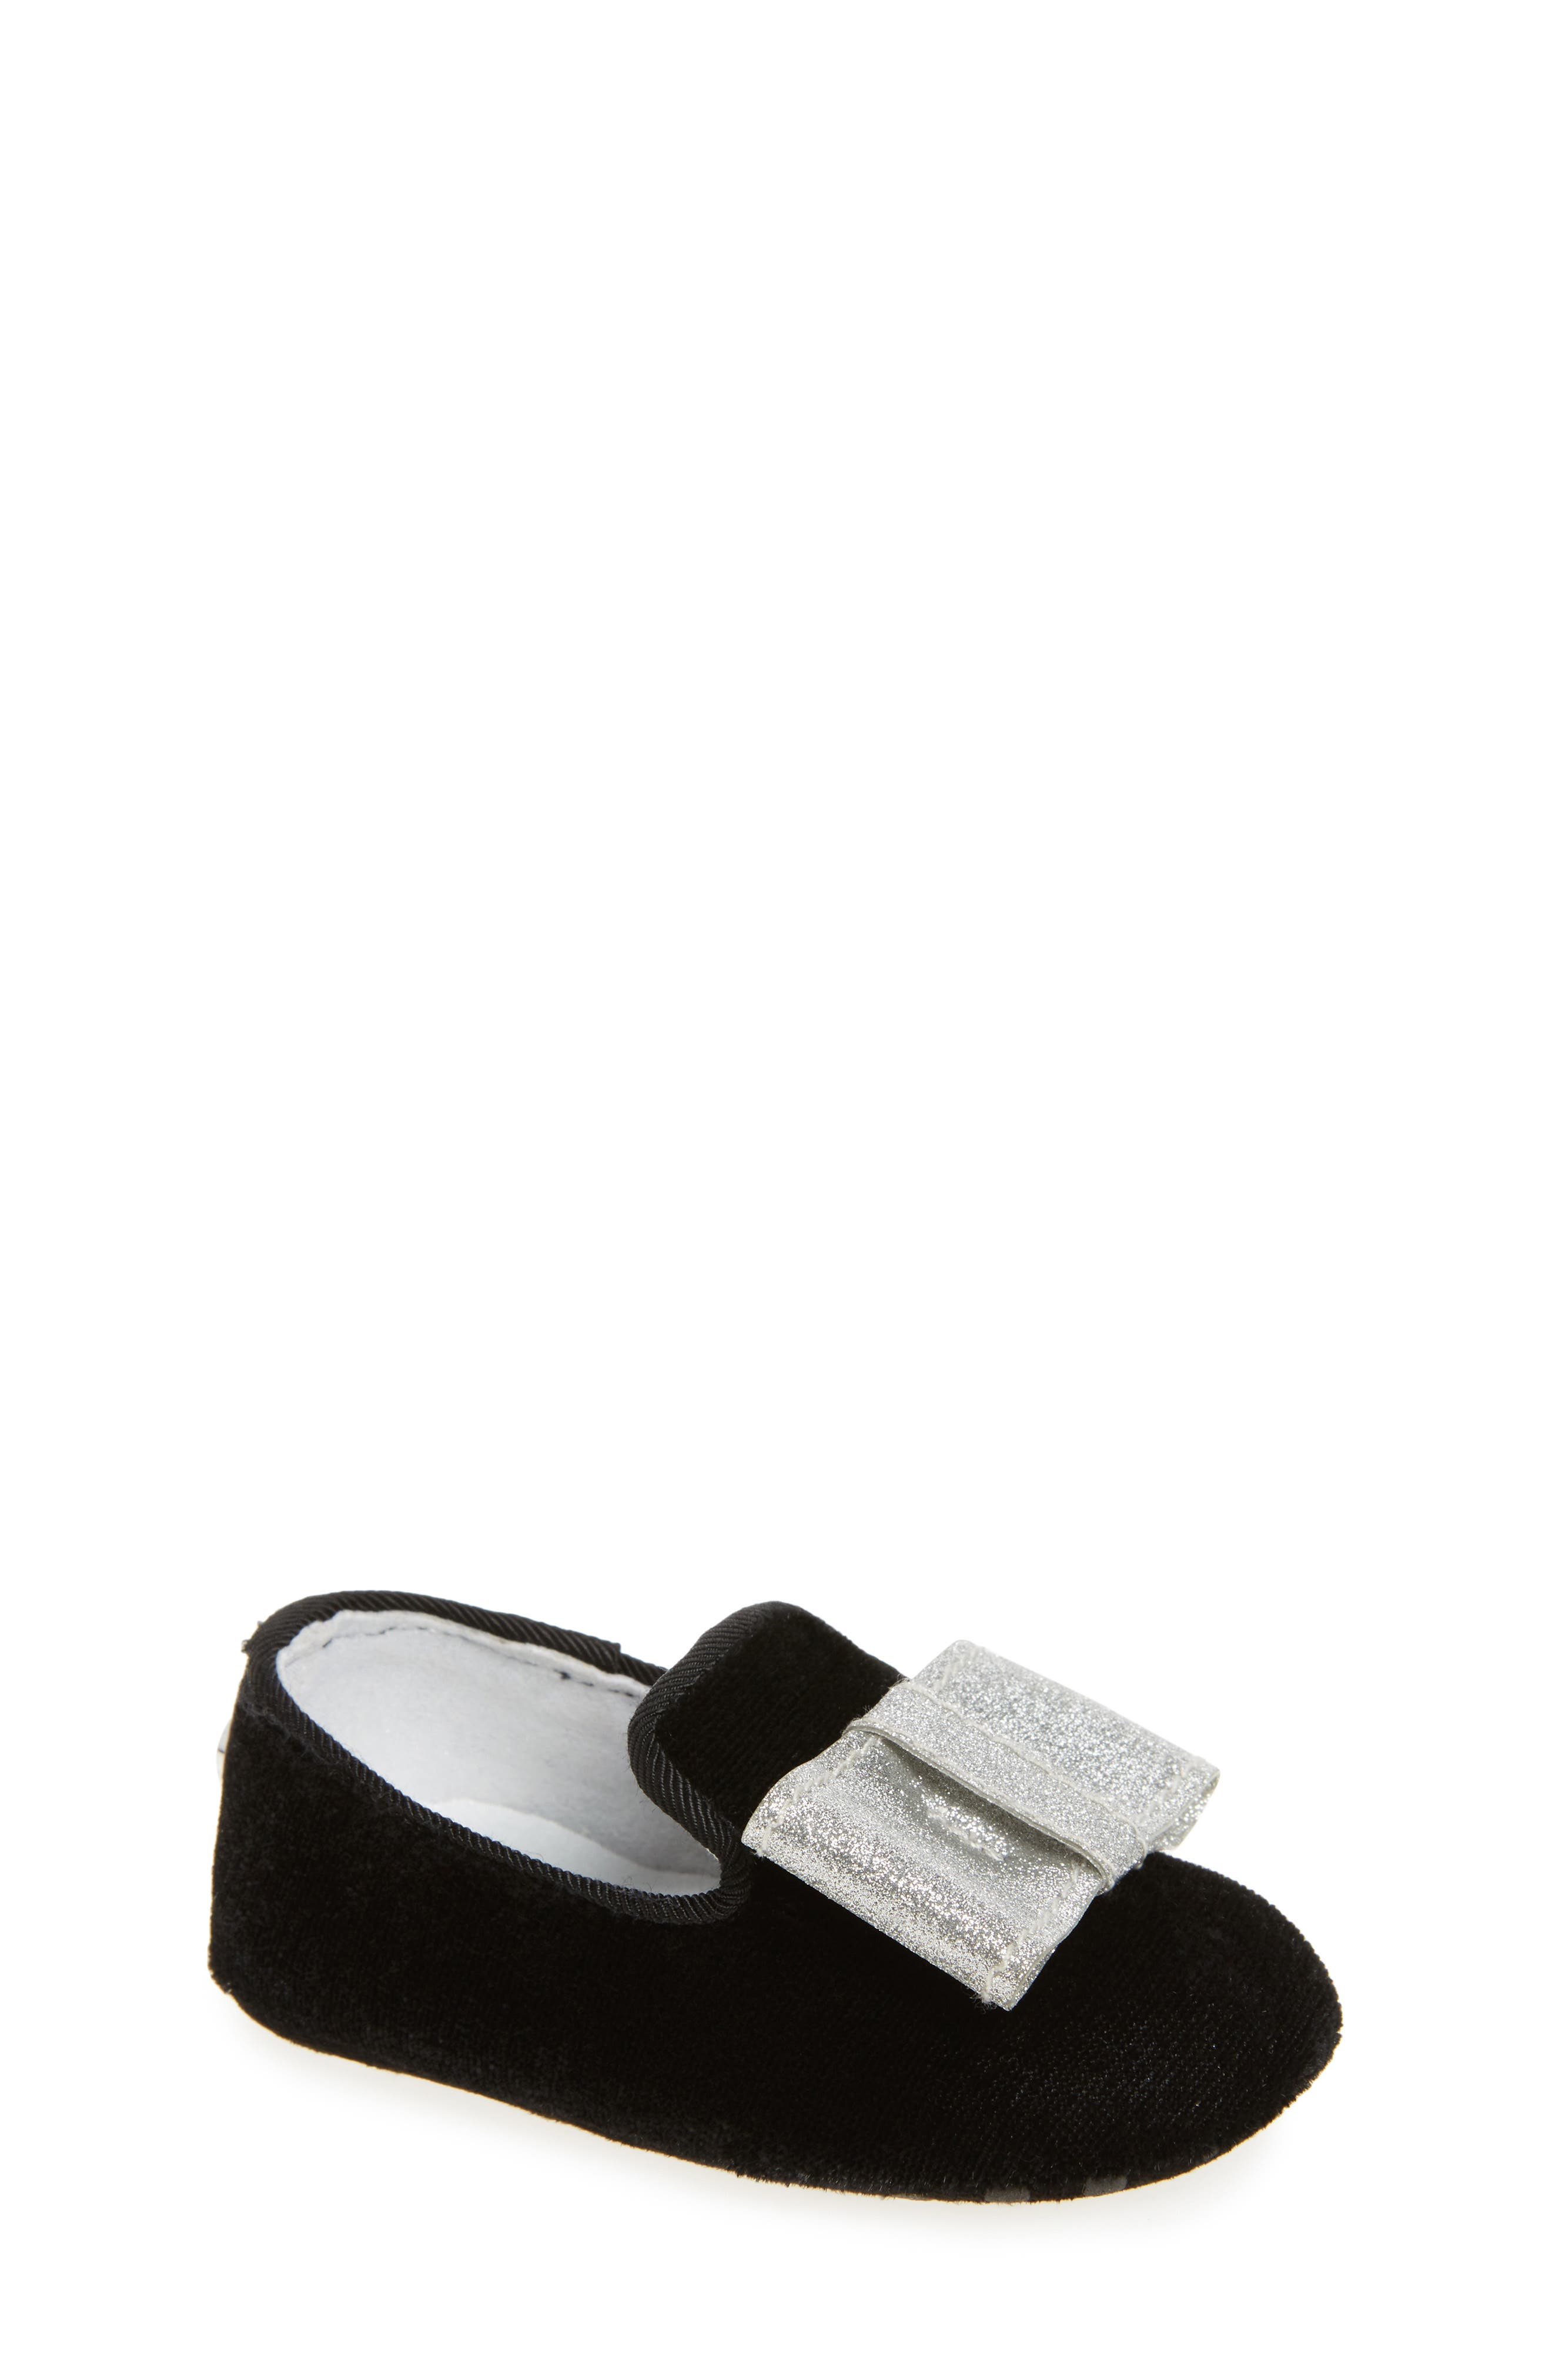 Stuart Weitzman Bow Loafer Crib Shoe (Baby)